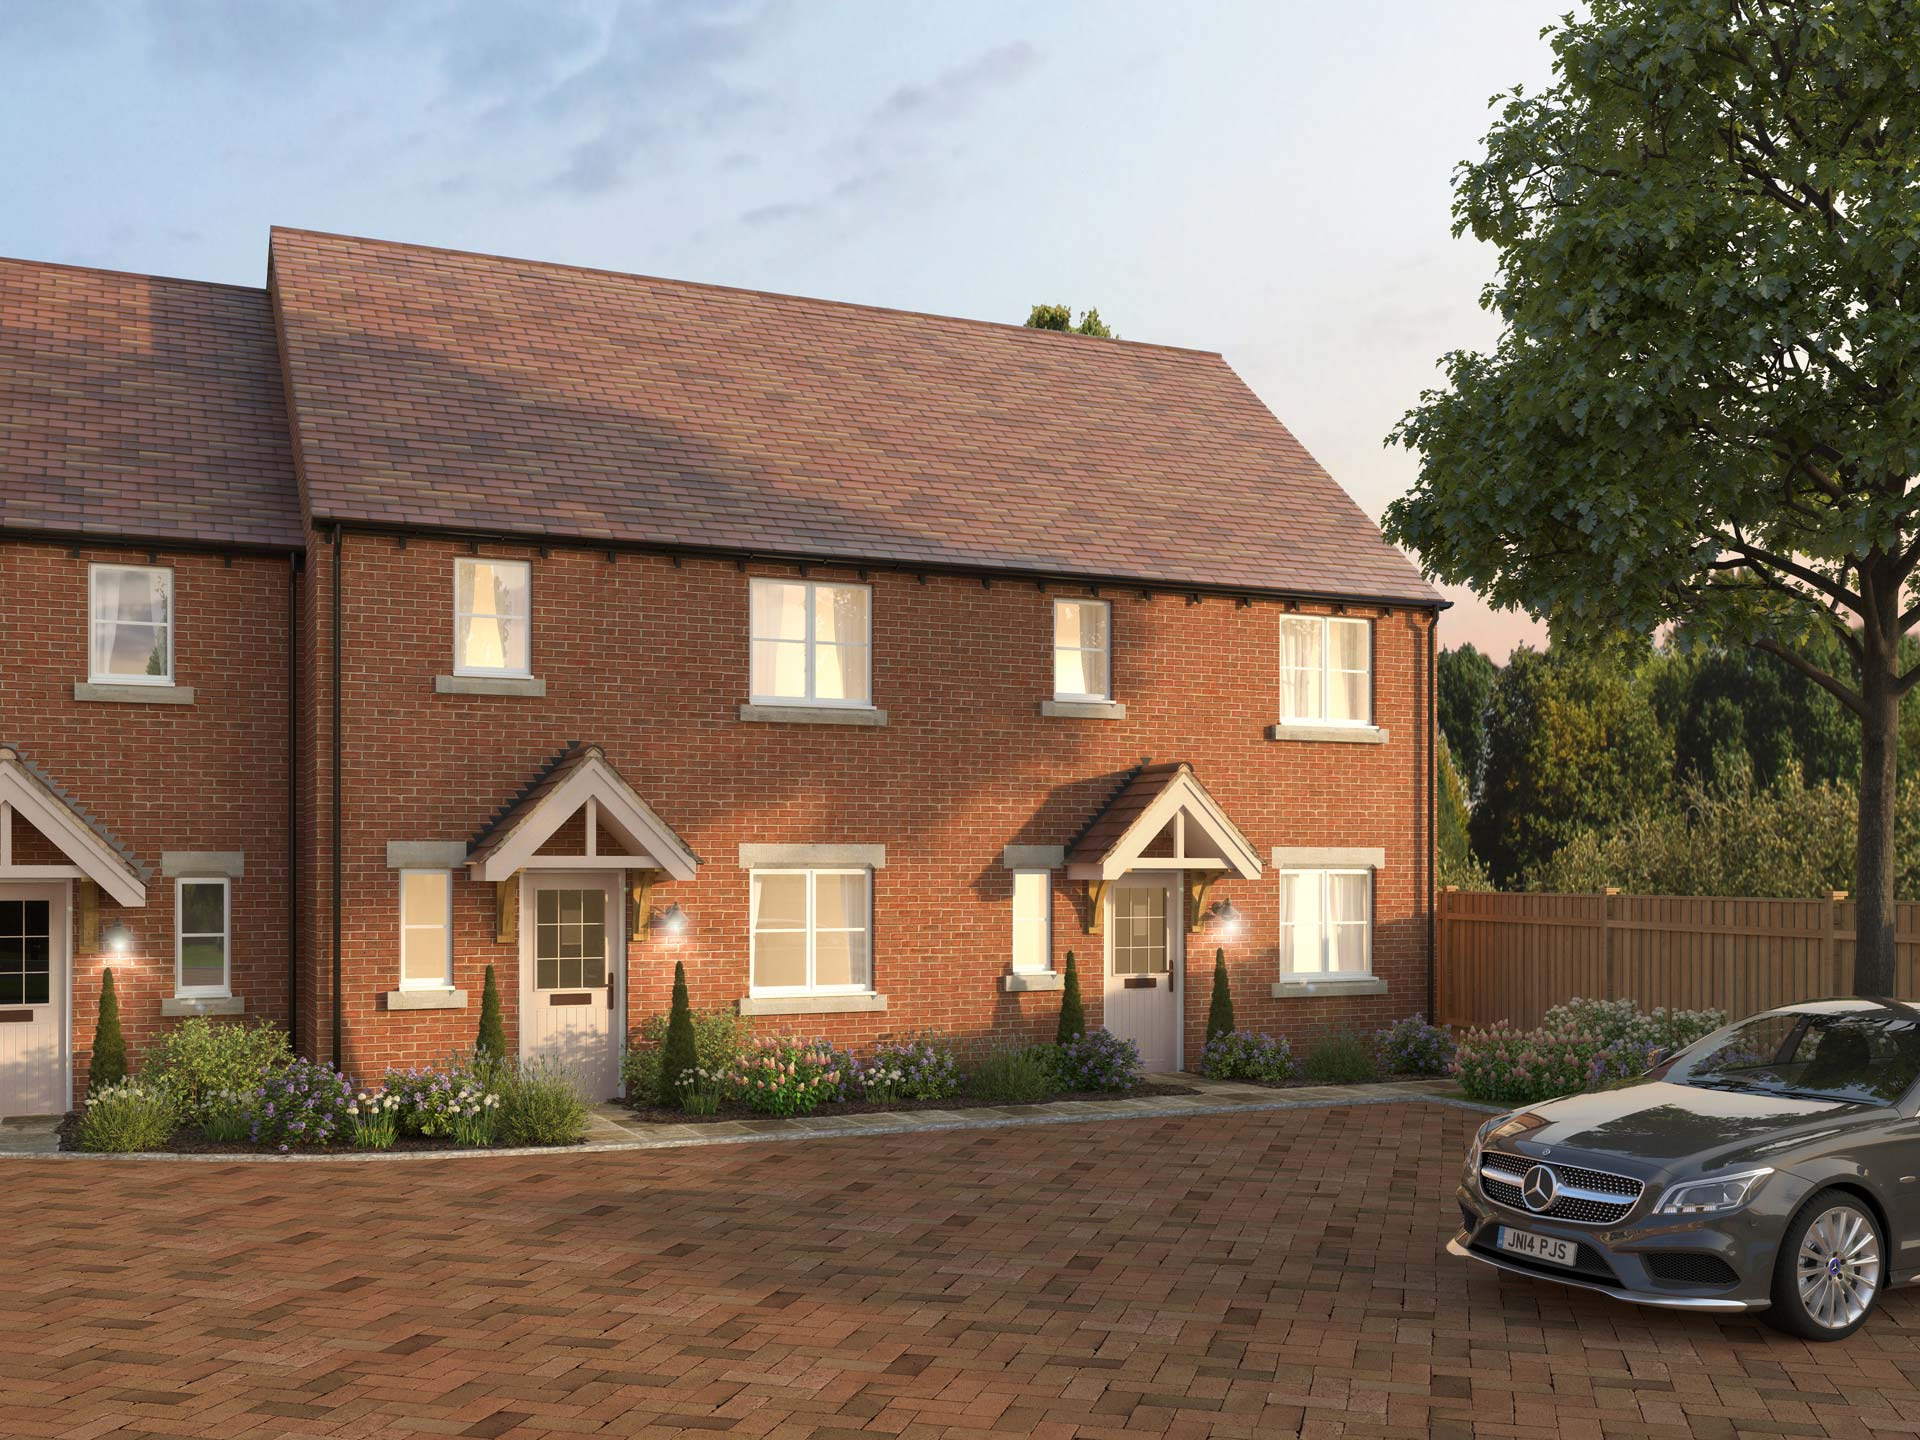 The Buckland - 3 BEDROOM HOUSEHOMES 64 & 65